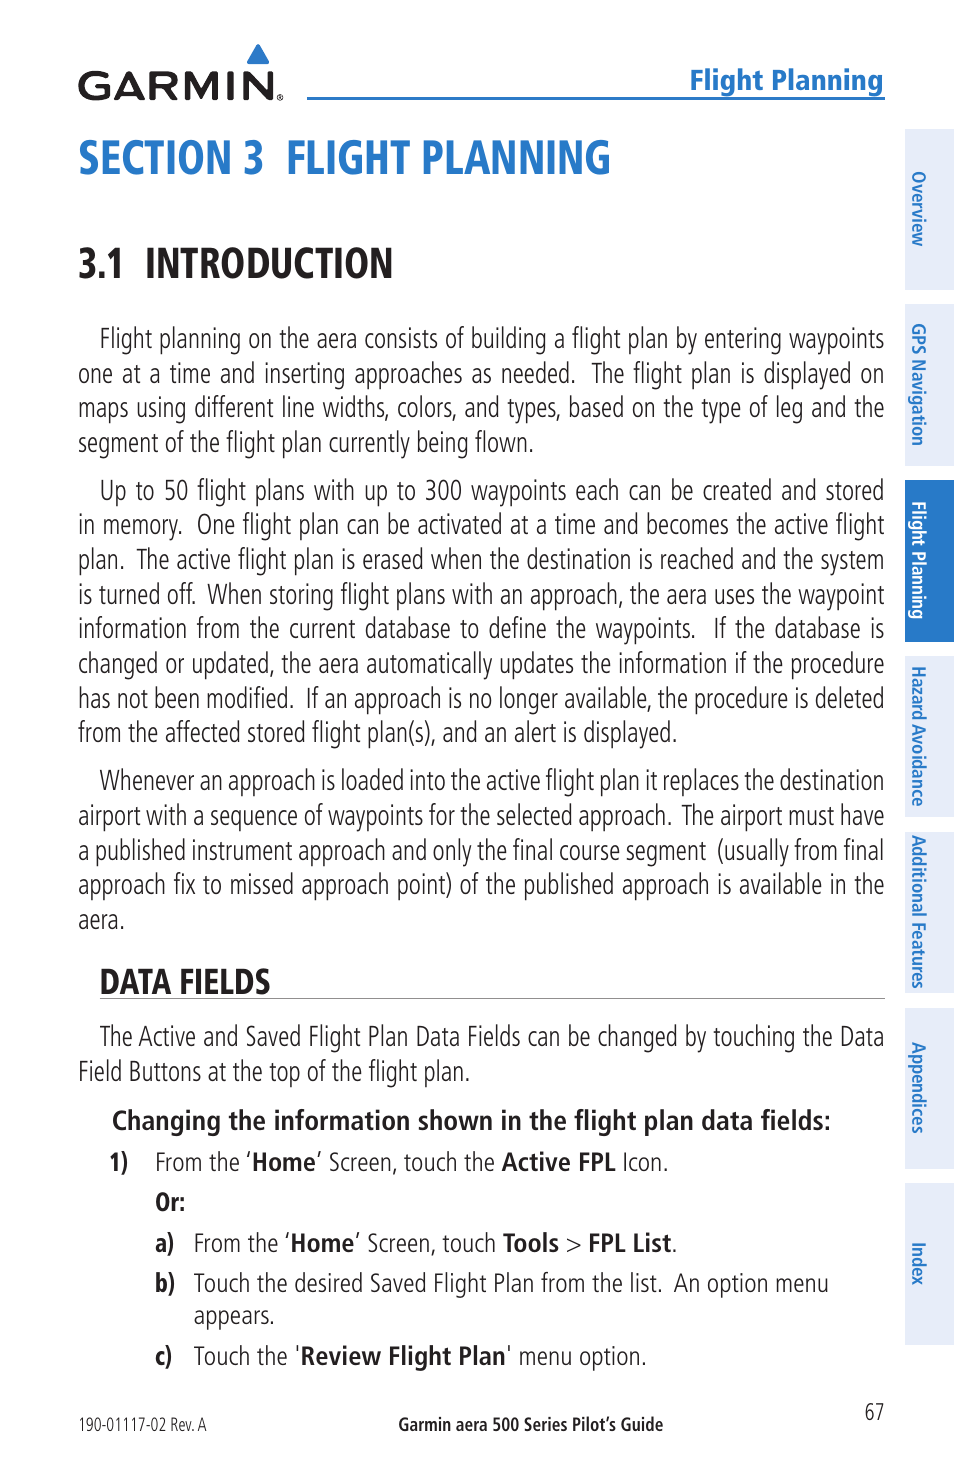 Section 3 flight planning, 1 introduction, Data fields